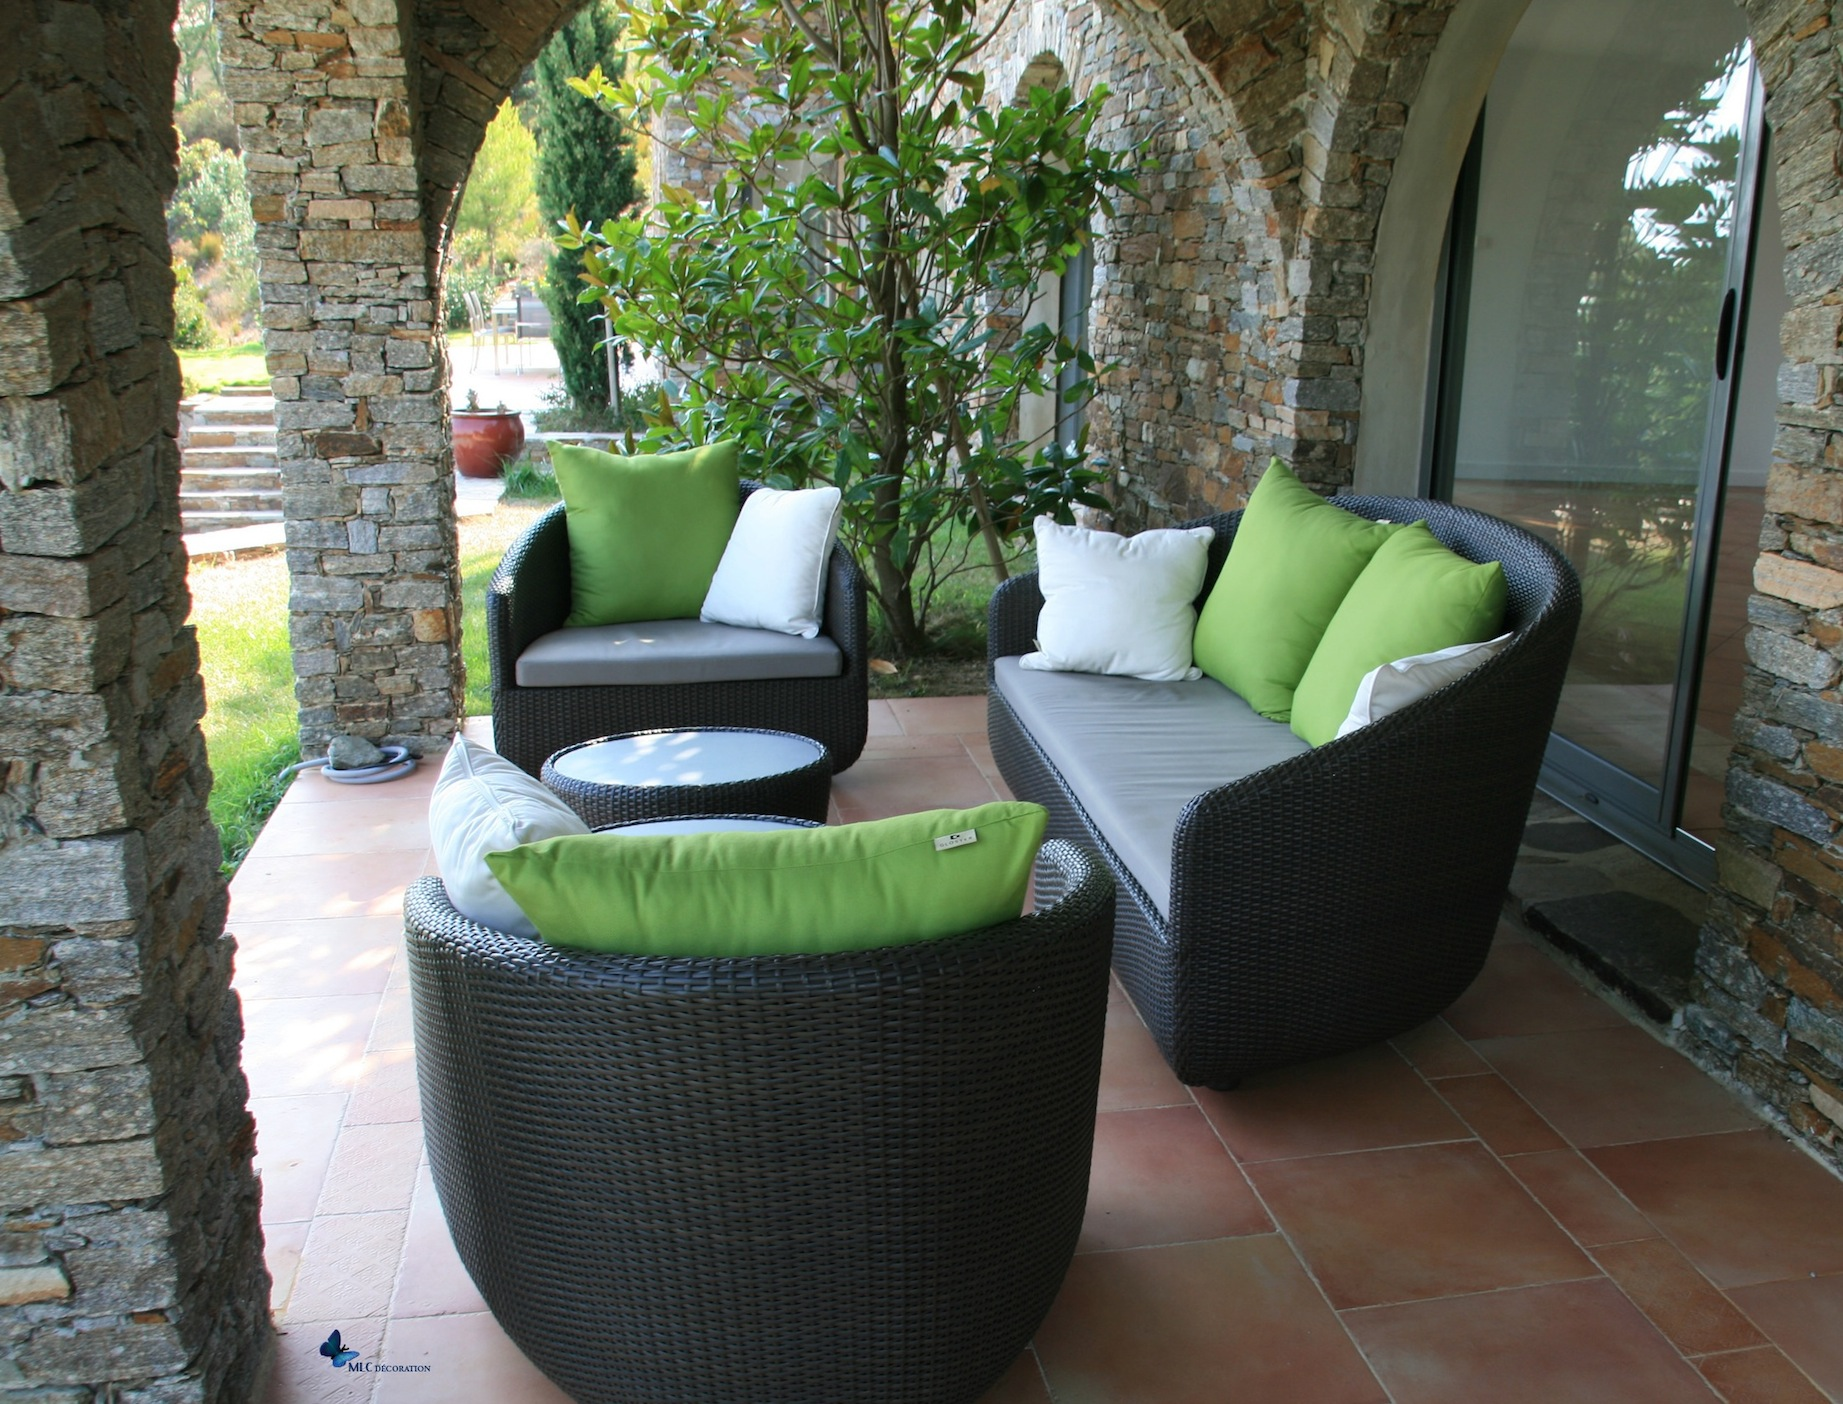 Canap ext rieur design archives le blog d co de mlc for Design exterieur jardin